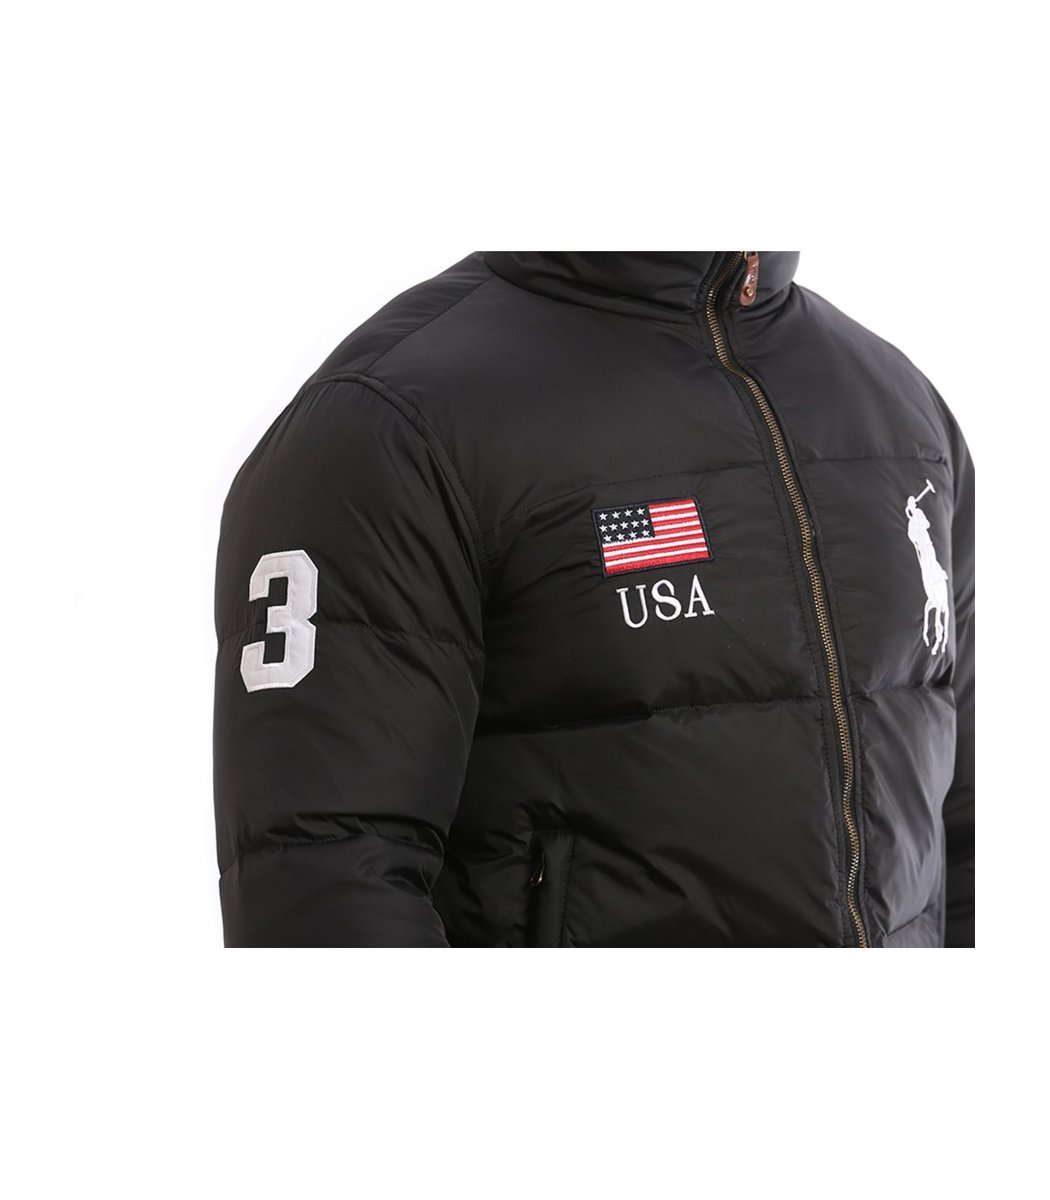 Пуховик POLO Ralph Lauren KR2 USA (Черный)